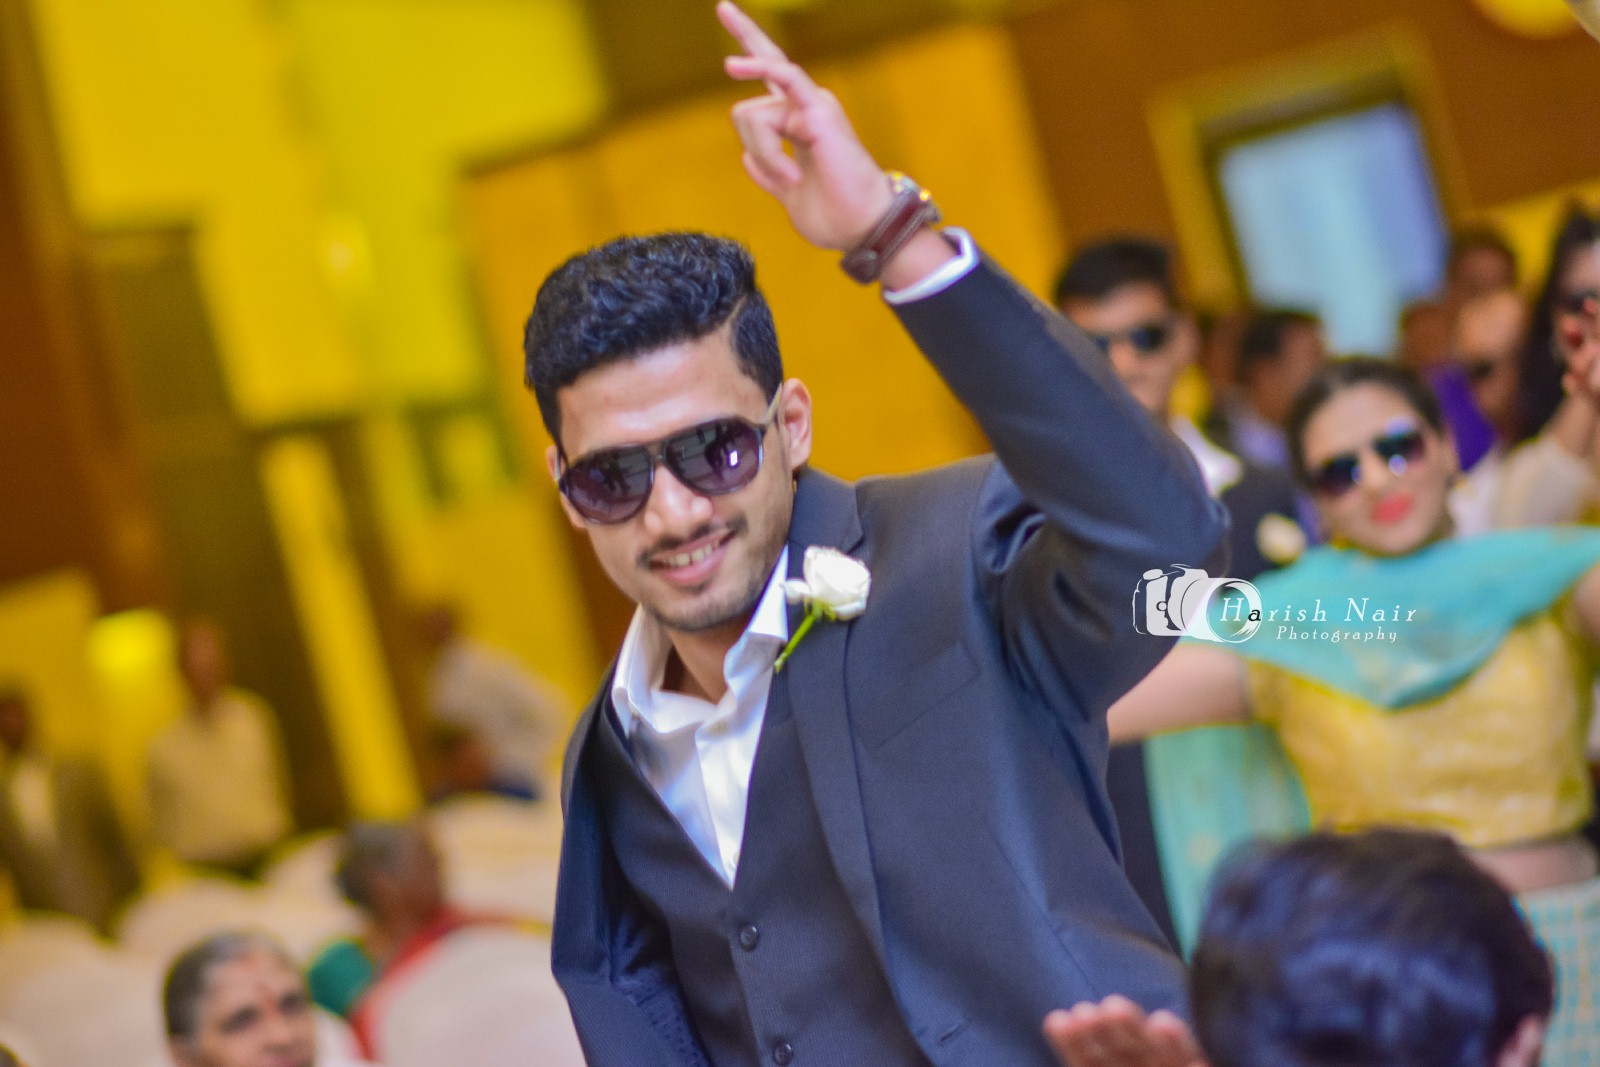 Candid Wedding Photography in Mumbai